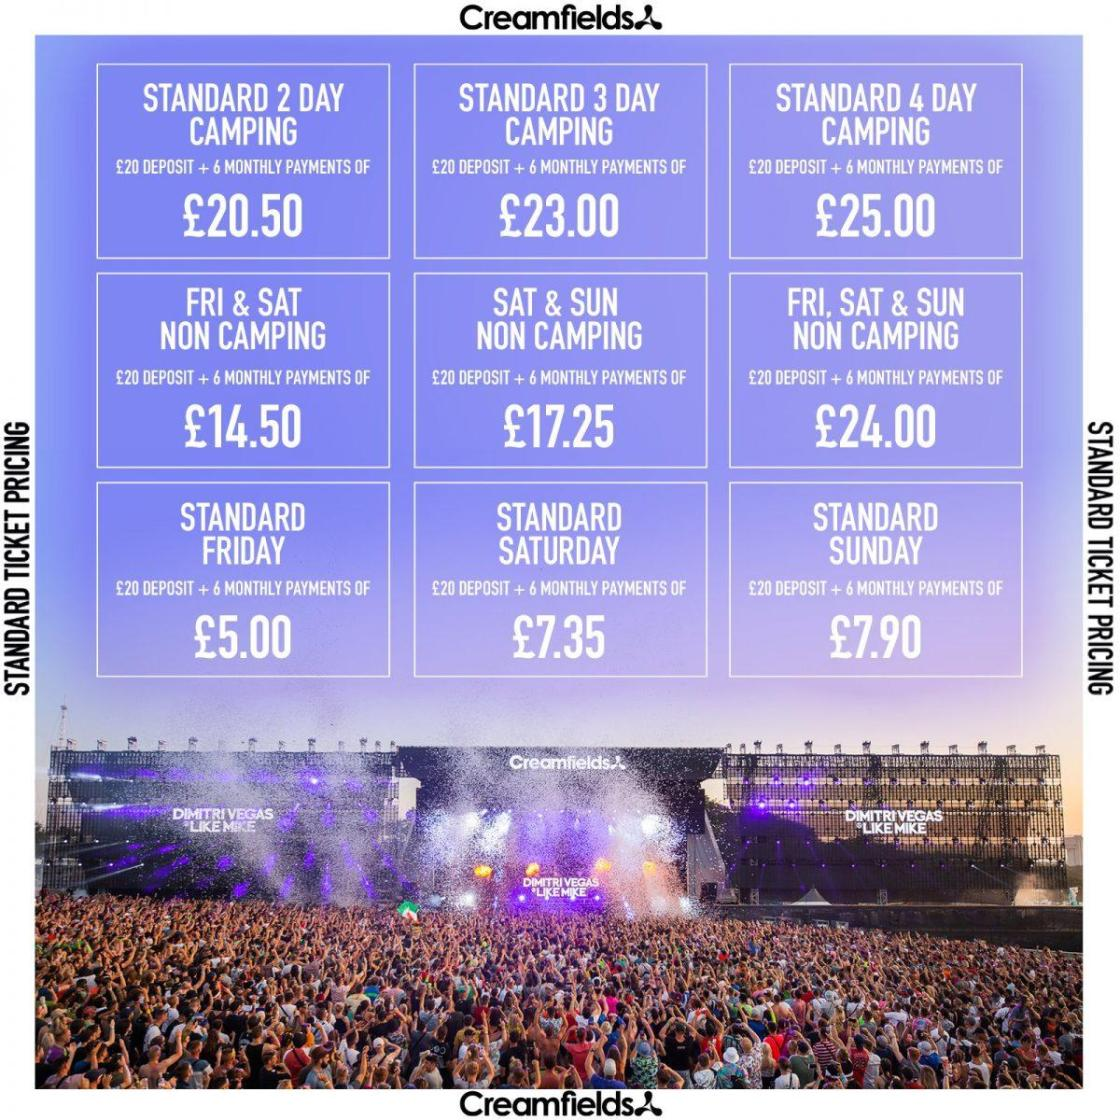 #Creamfields2021 is our most affordable Creamfields in history! Book your ticket...